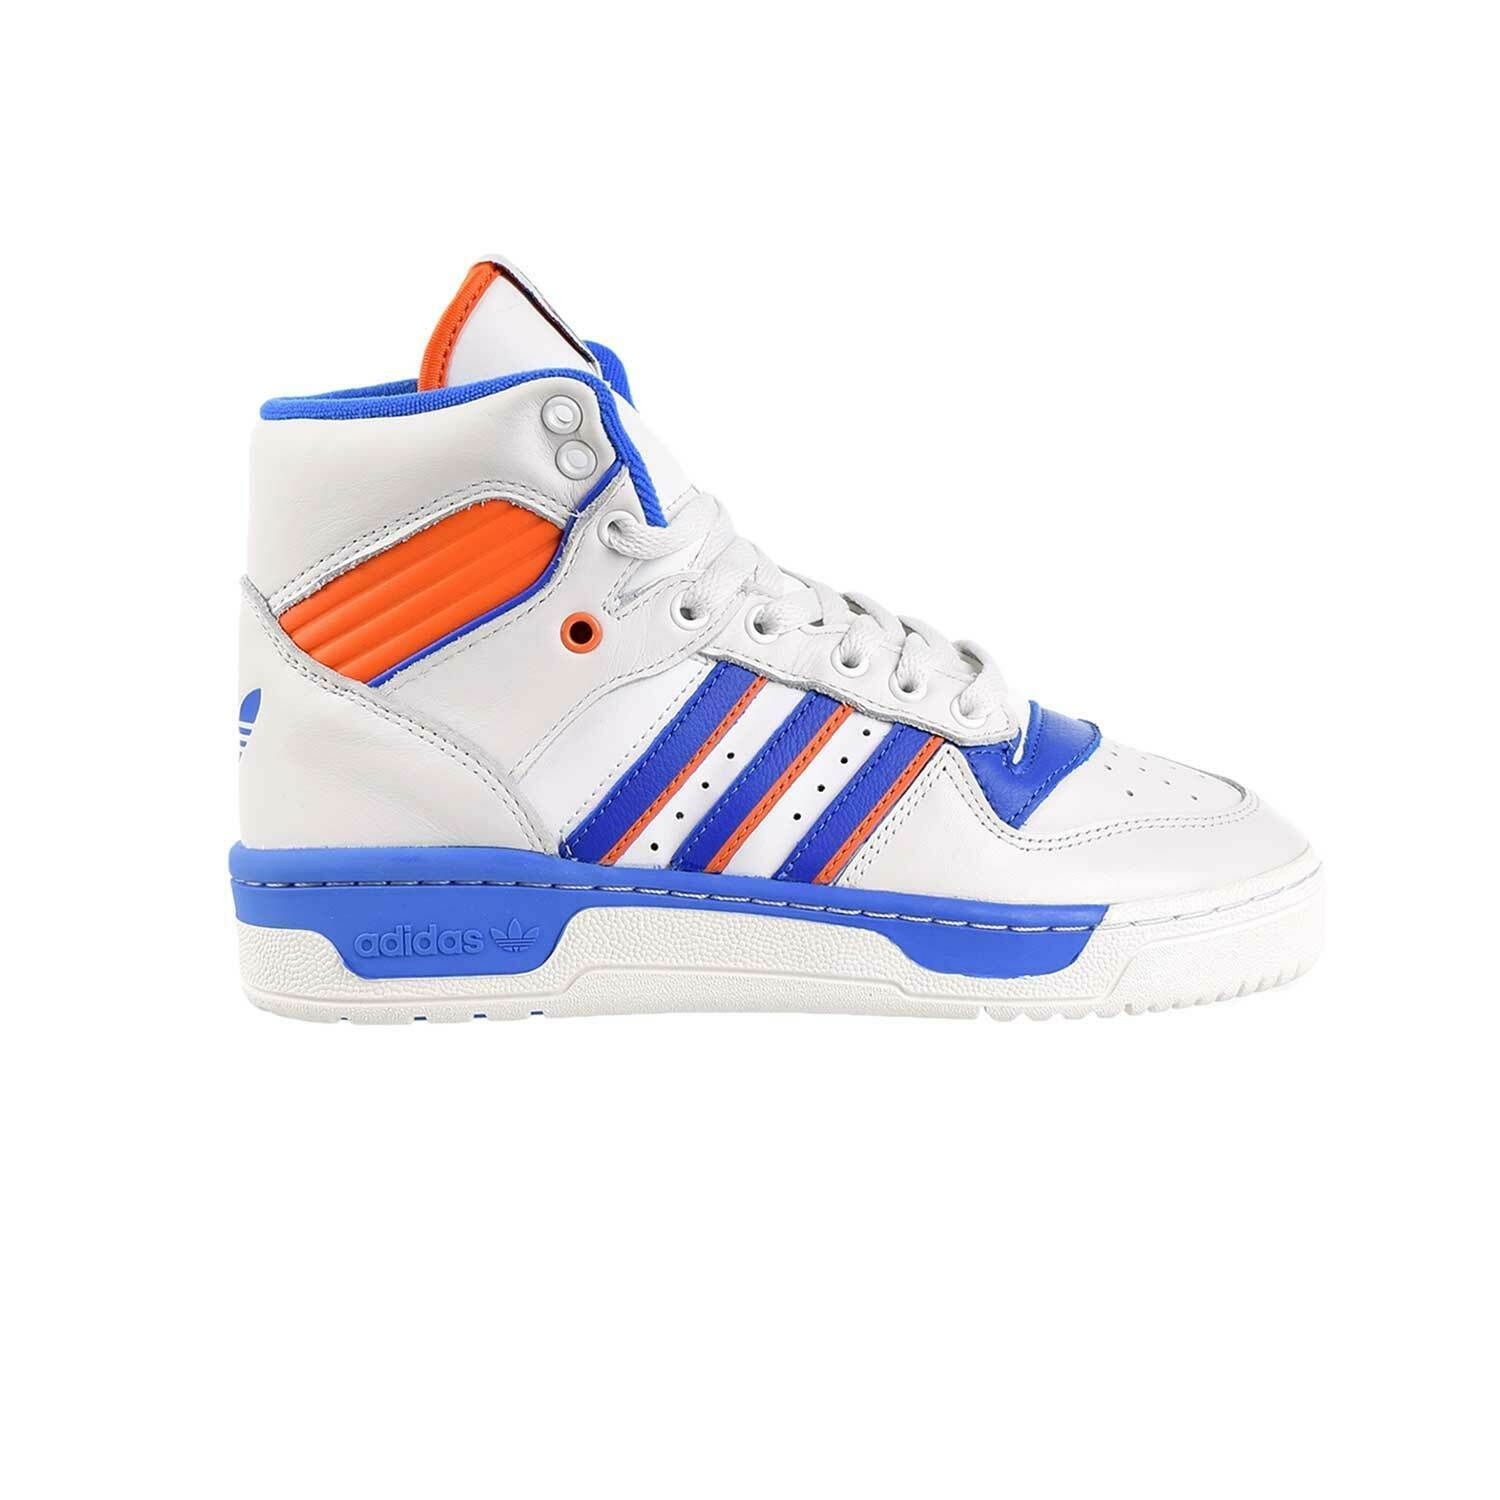 Adidas Rivalry Mens Shoes Crystal White Blue Orange f34139